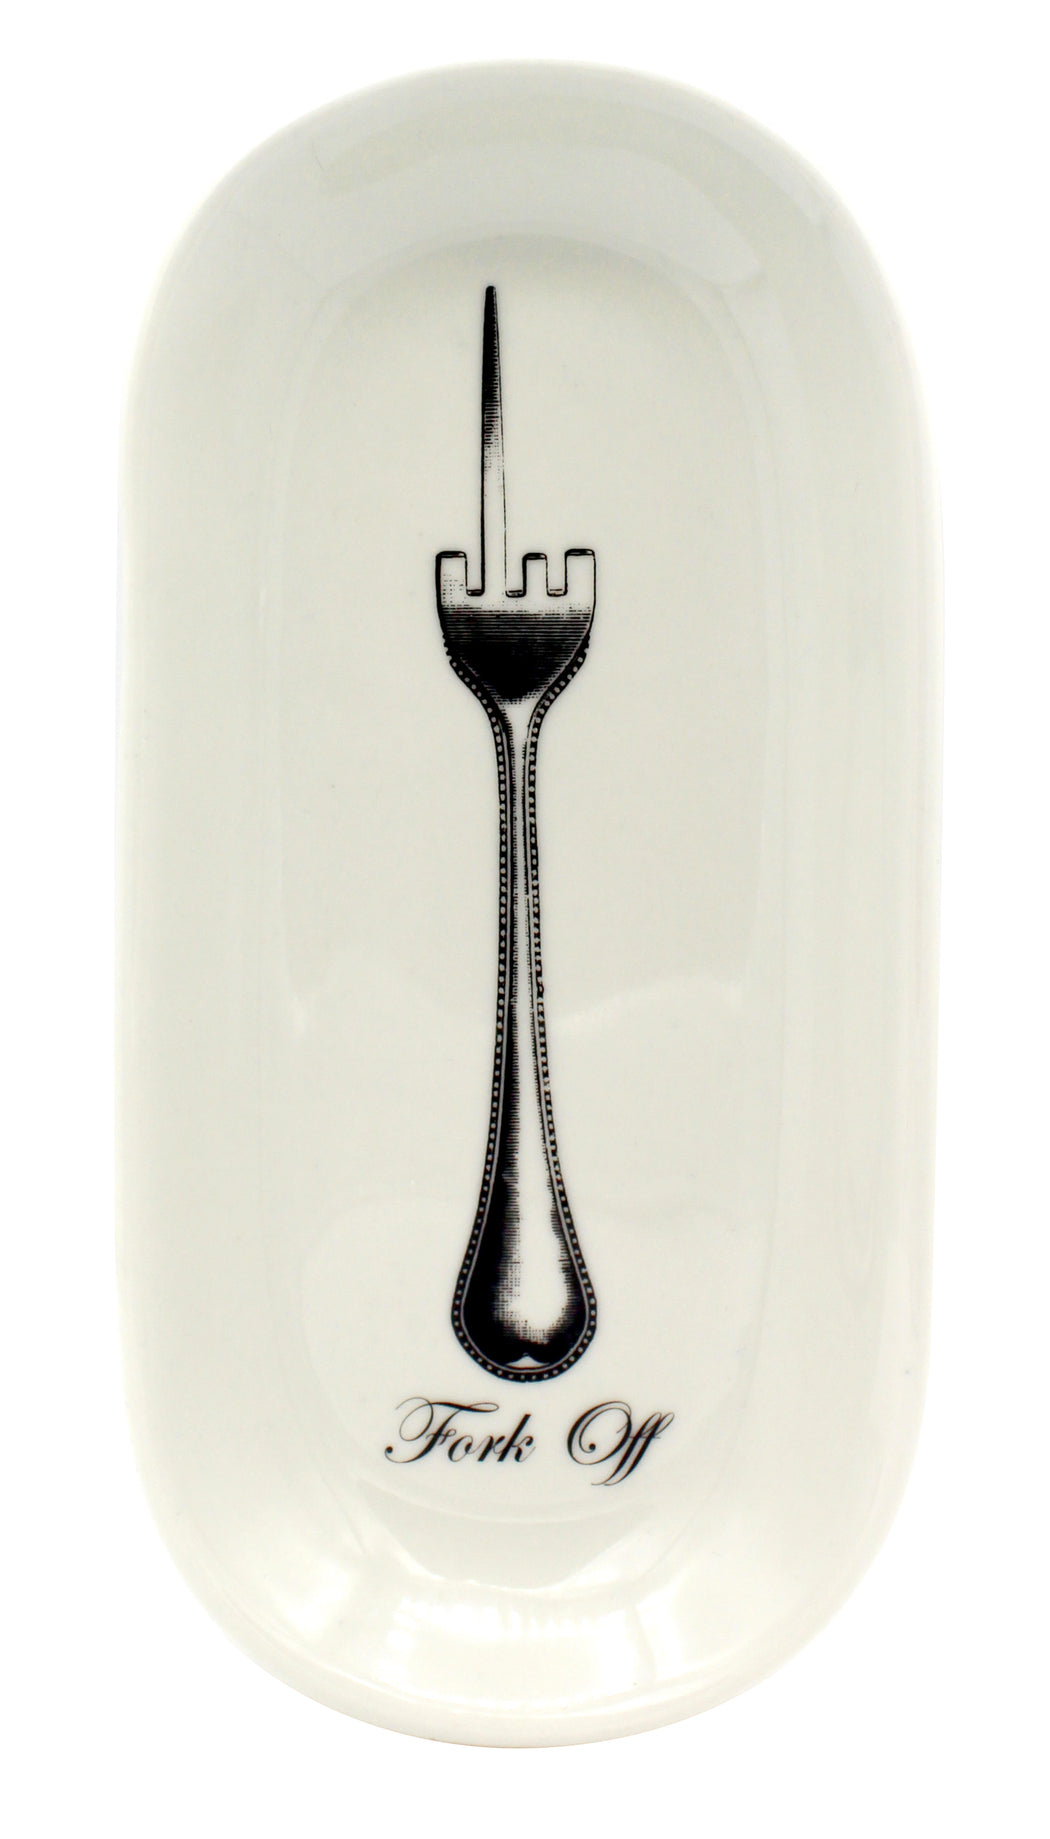 """Fork Off"" Spoon Rest - Fishs Eddy"